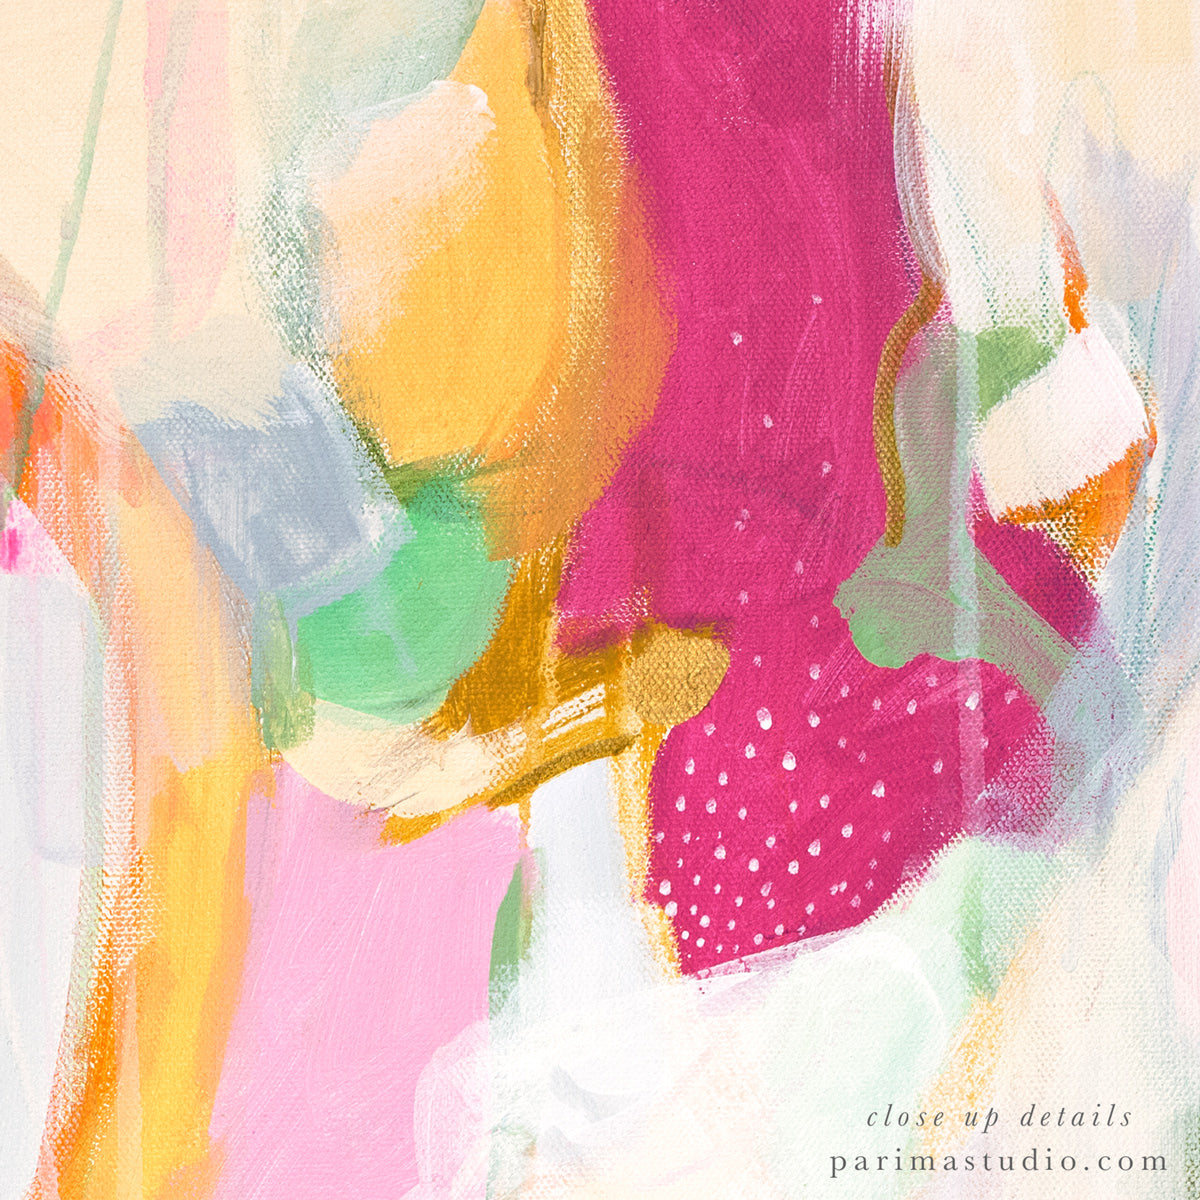 Close up details -Adira. pink and green abstract art print by Parima Studio